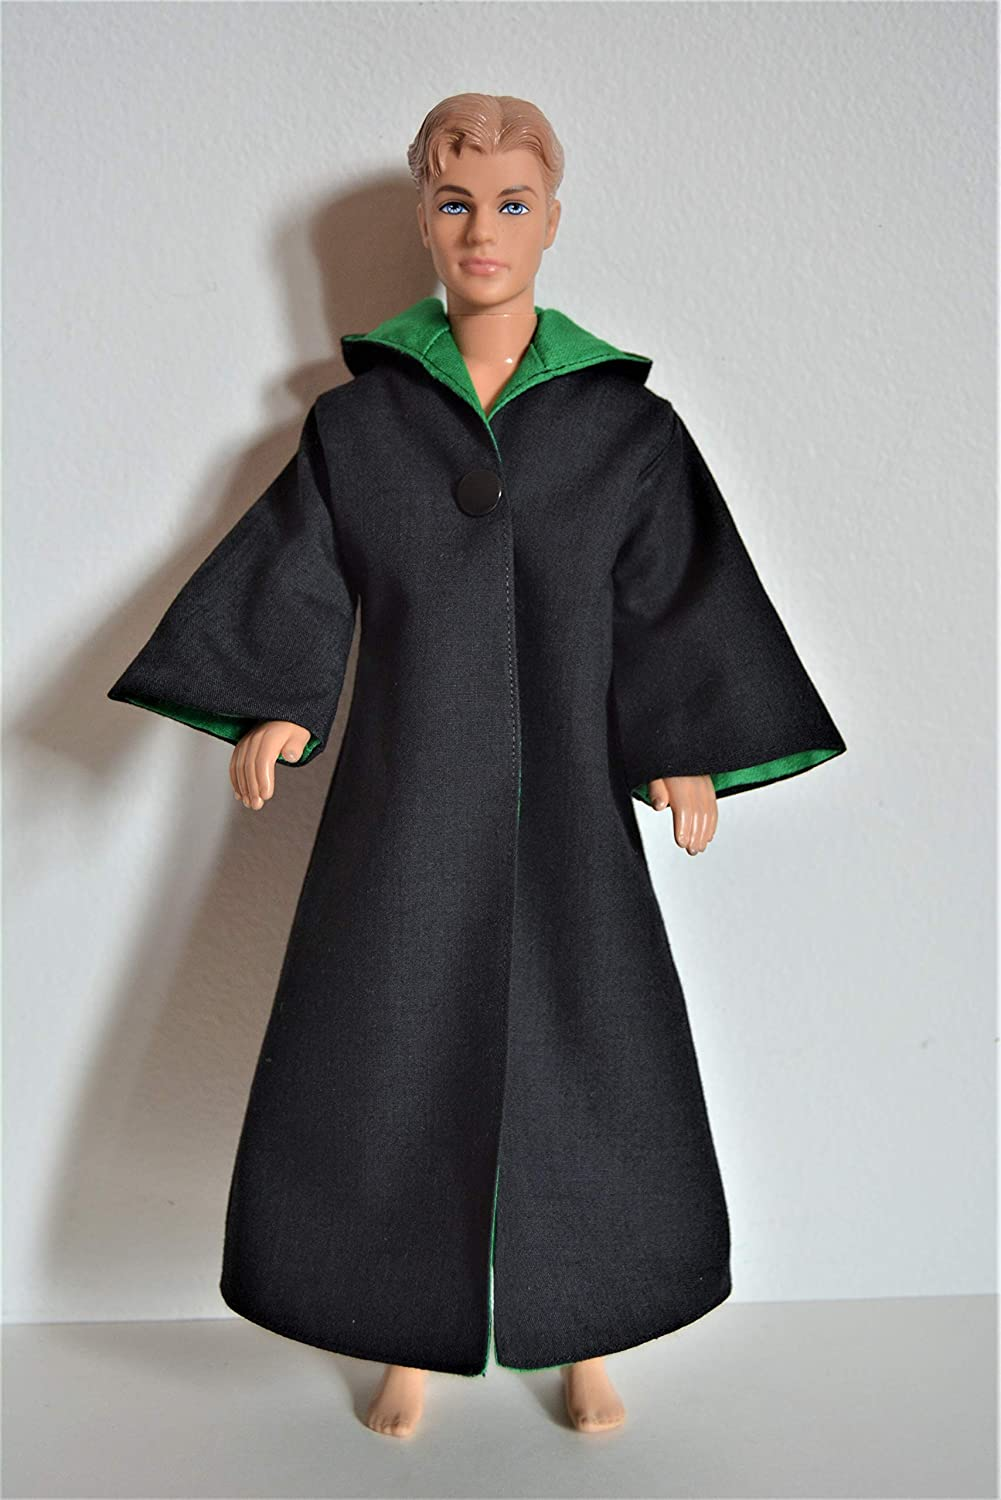 Handmade Wizard School Uniform Costume Cloak Robe Green House Color fit 12' Barbie Boy Dolls Ken